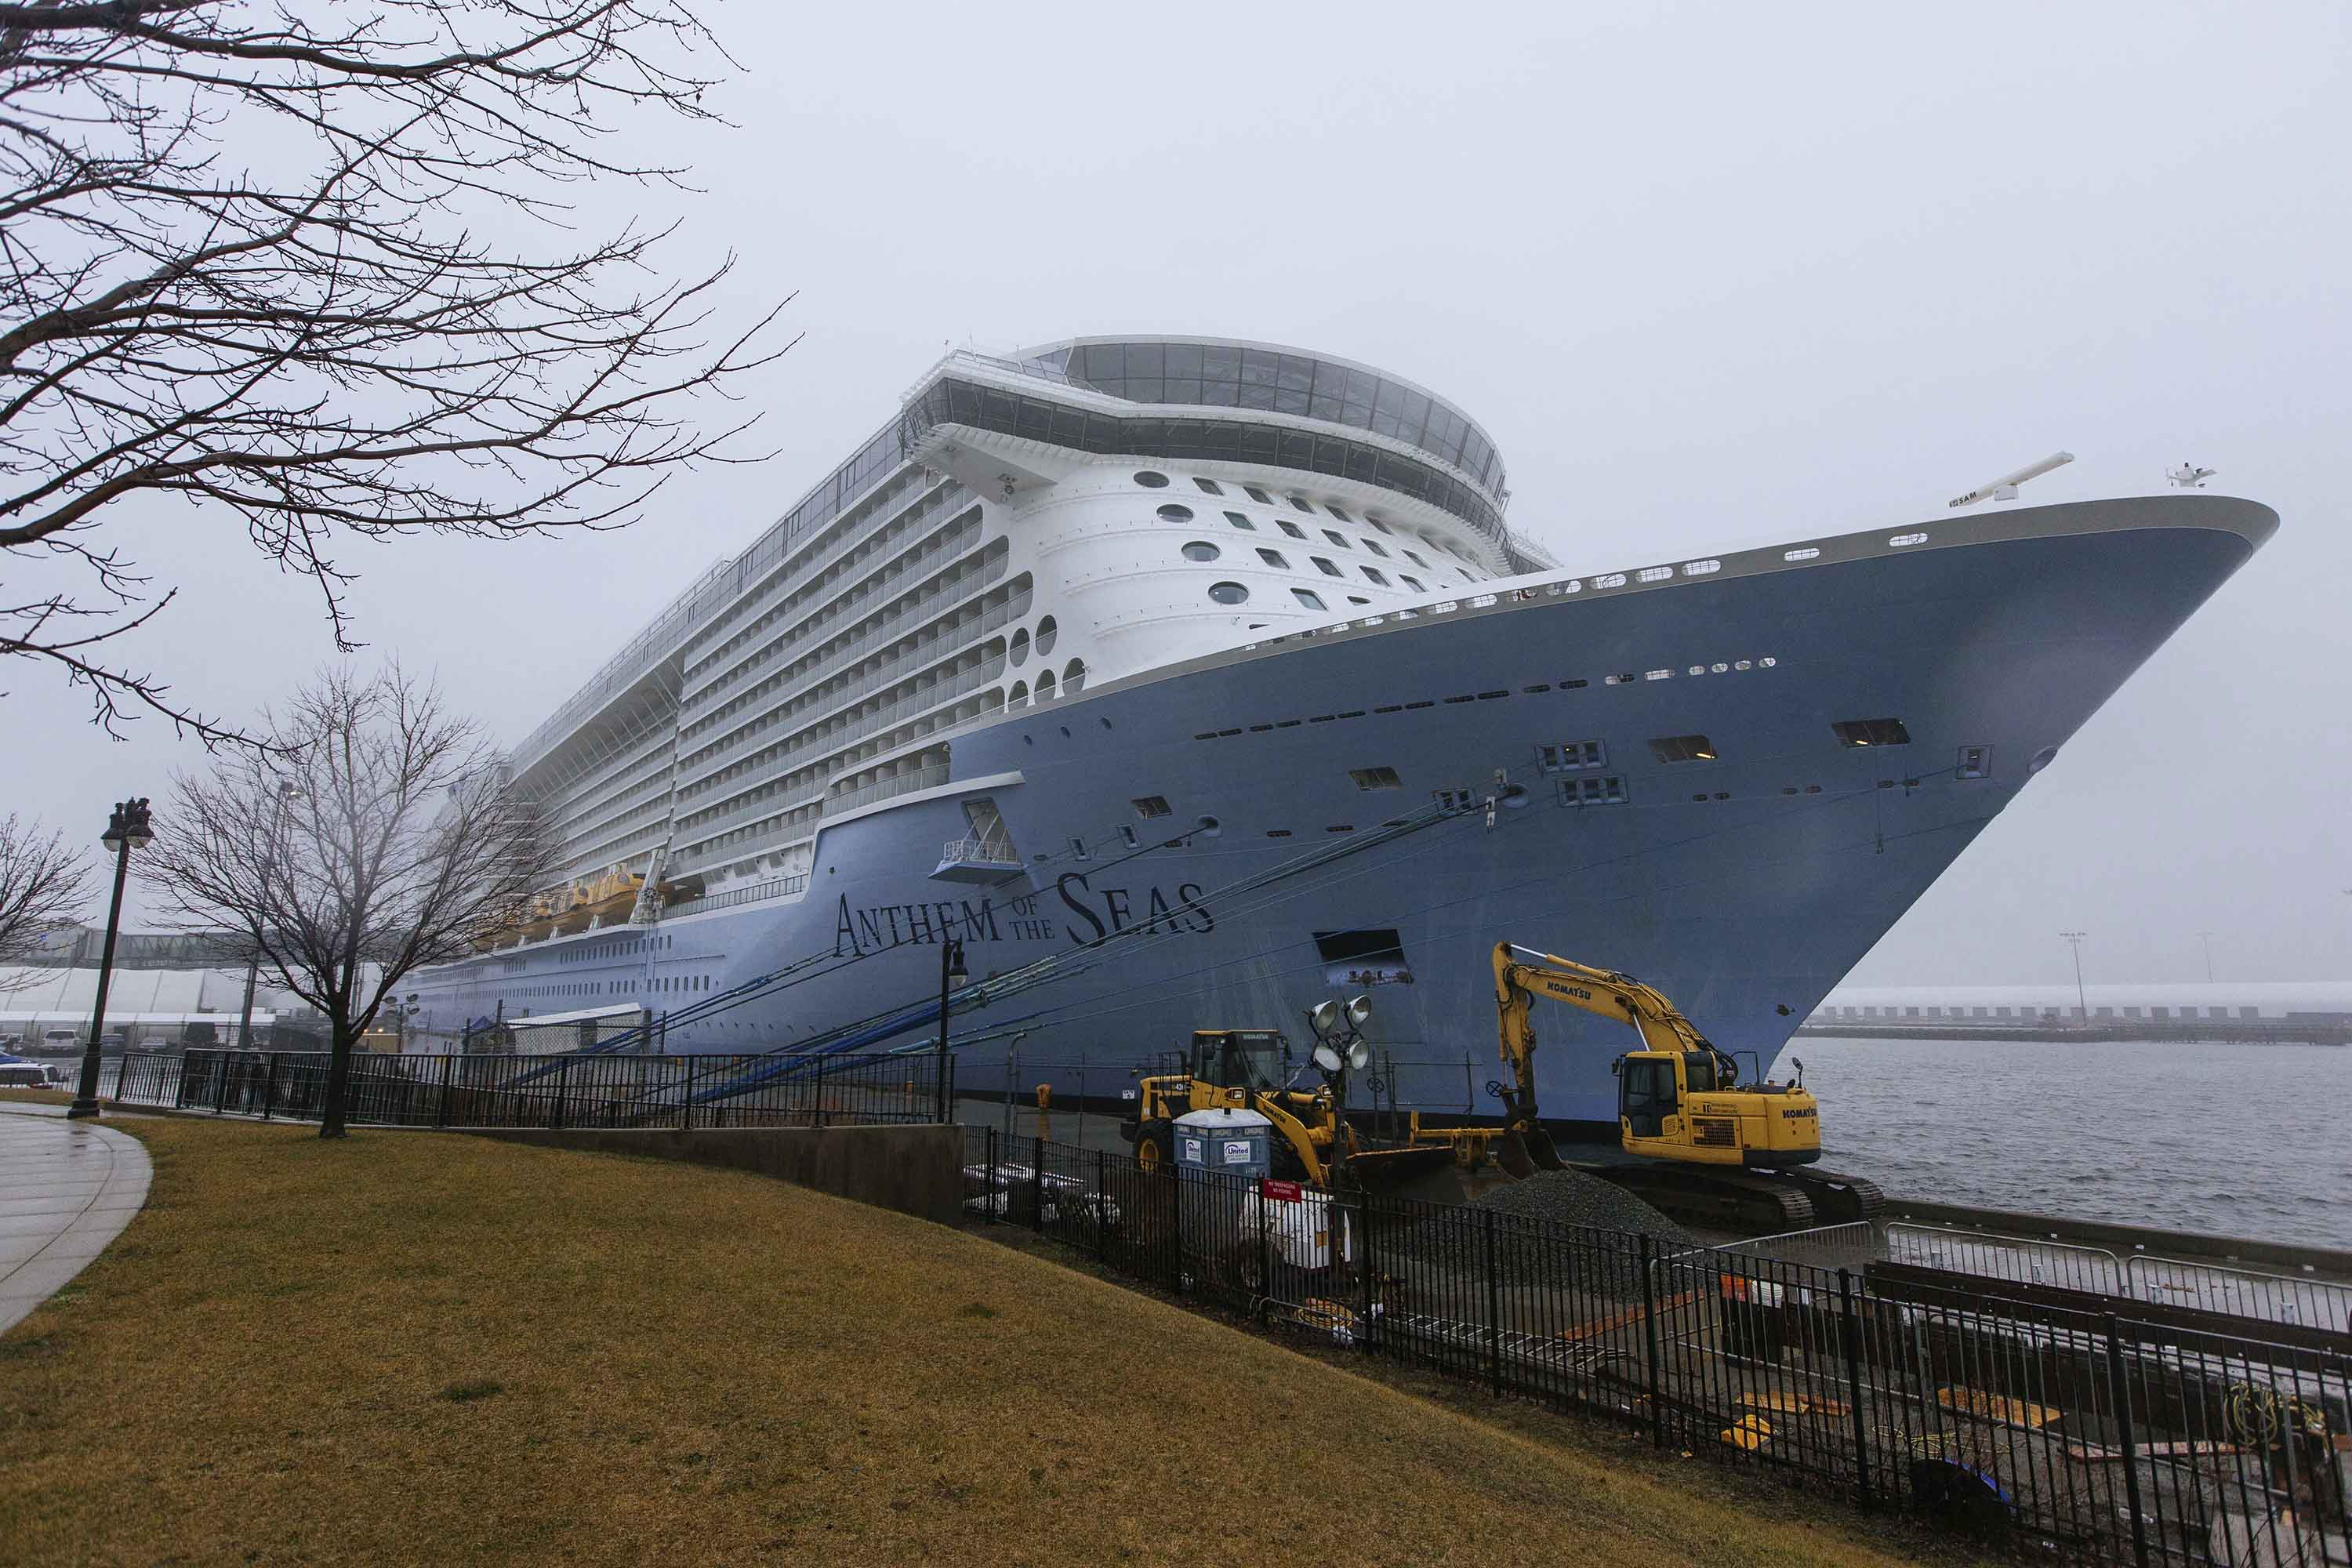 The Anthem of the Seas cruise ship is seen docked in Bayonne, N.J. on Friday.